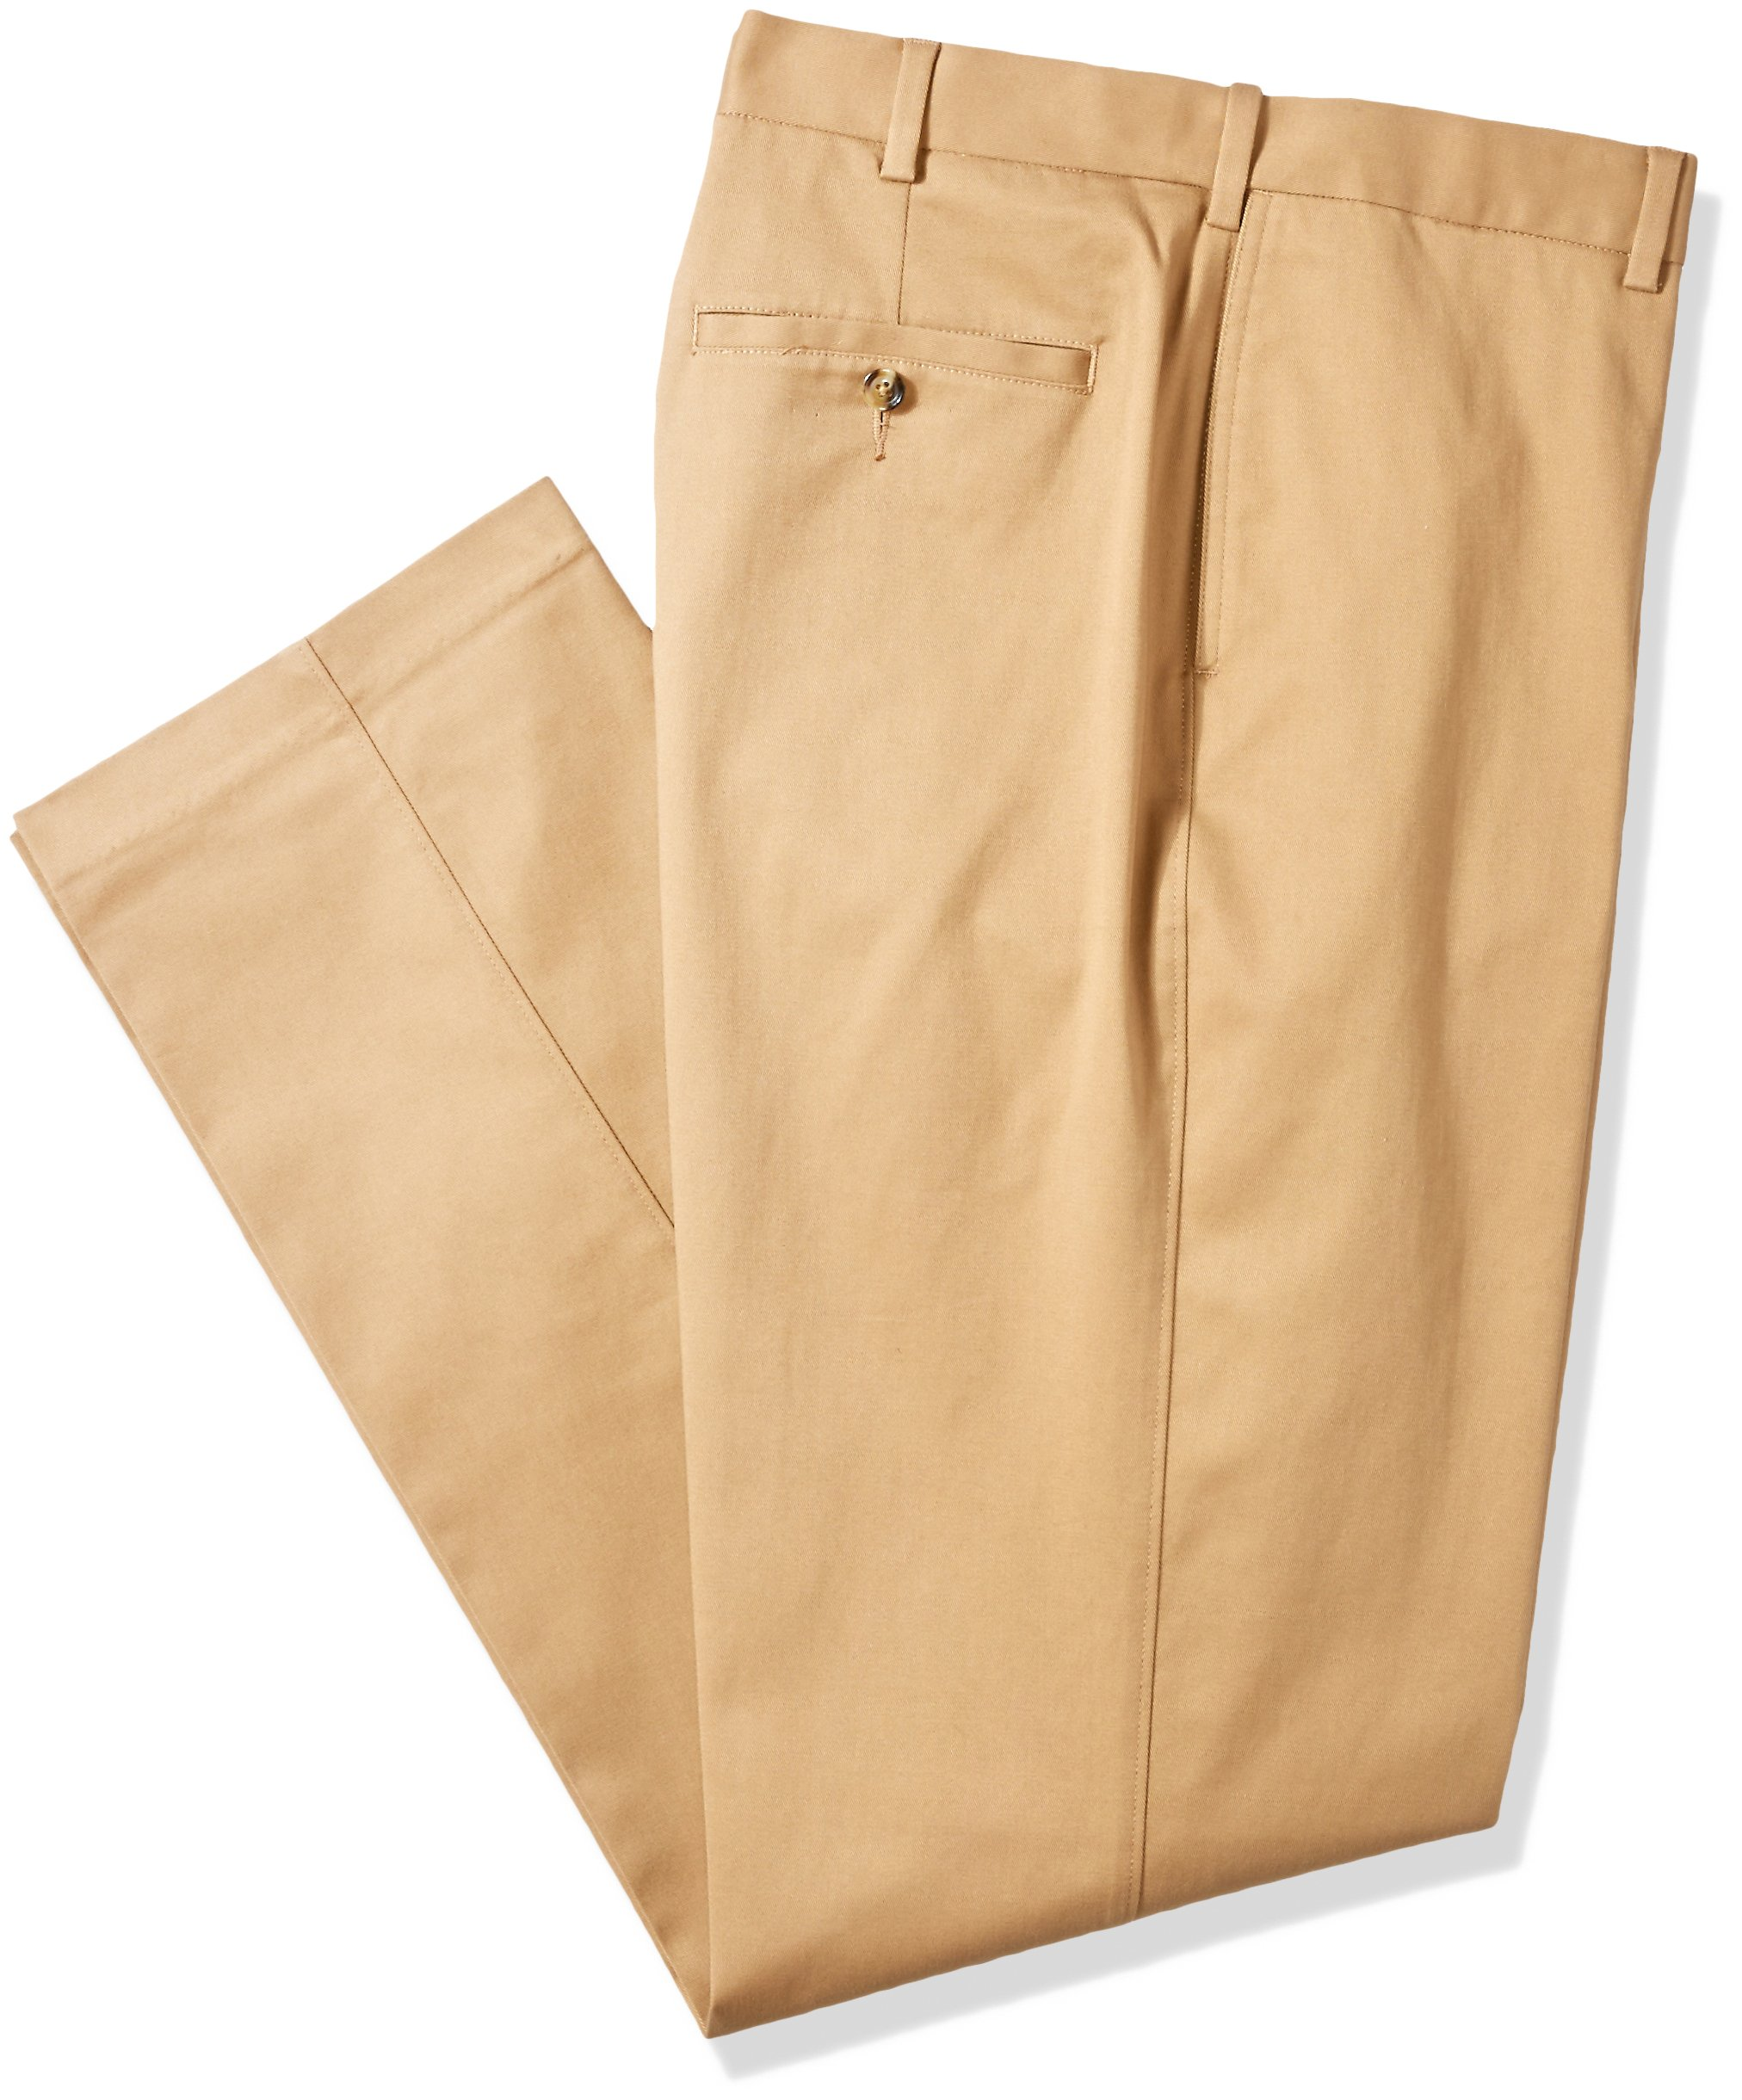 Savane Men's Big and Tall Flat Front Stretch Ultimate Performance Chino, Ermine, 44W x 32L